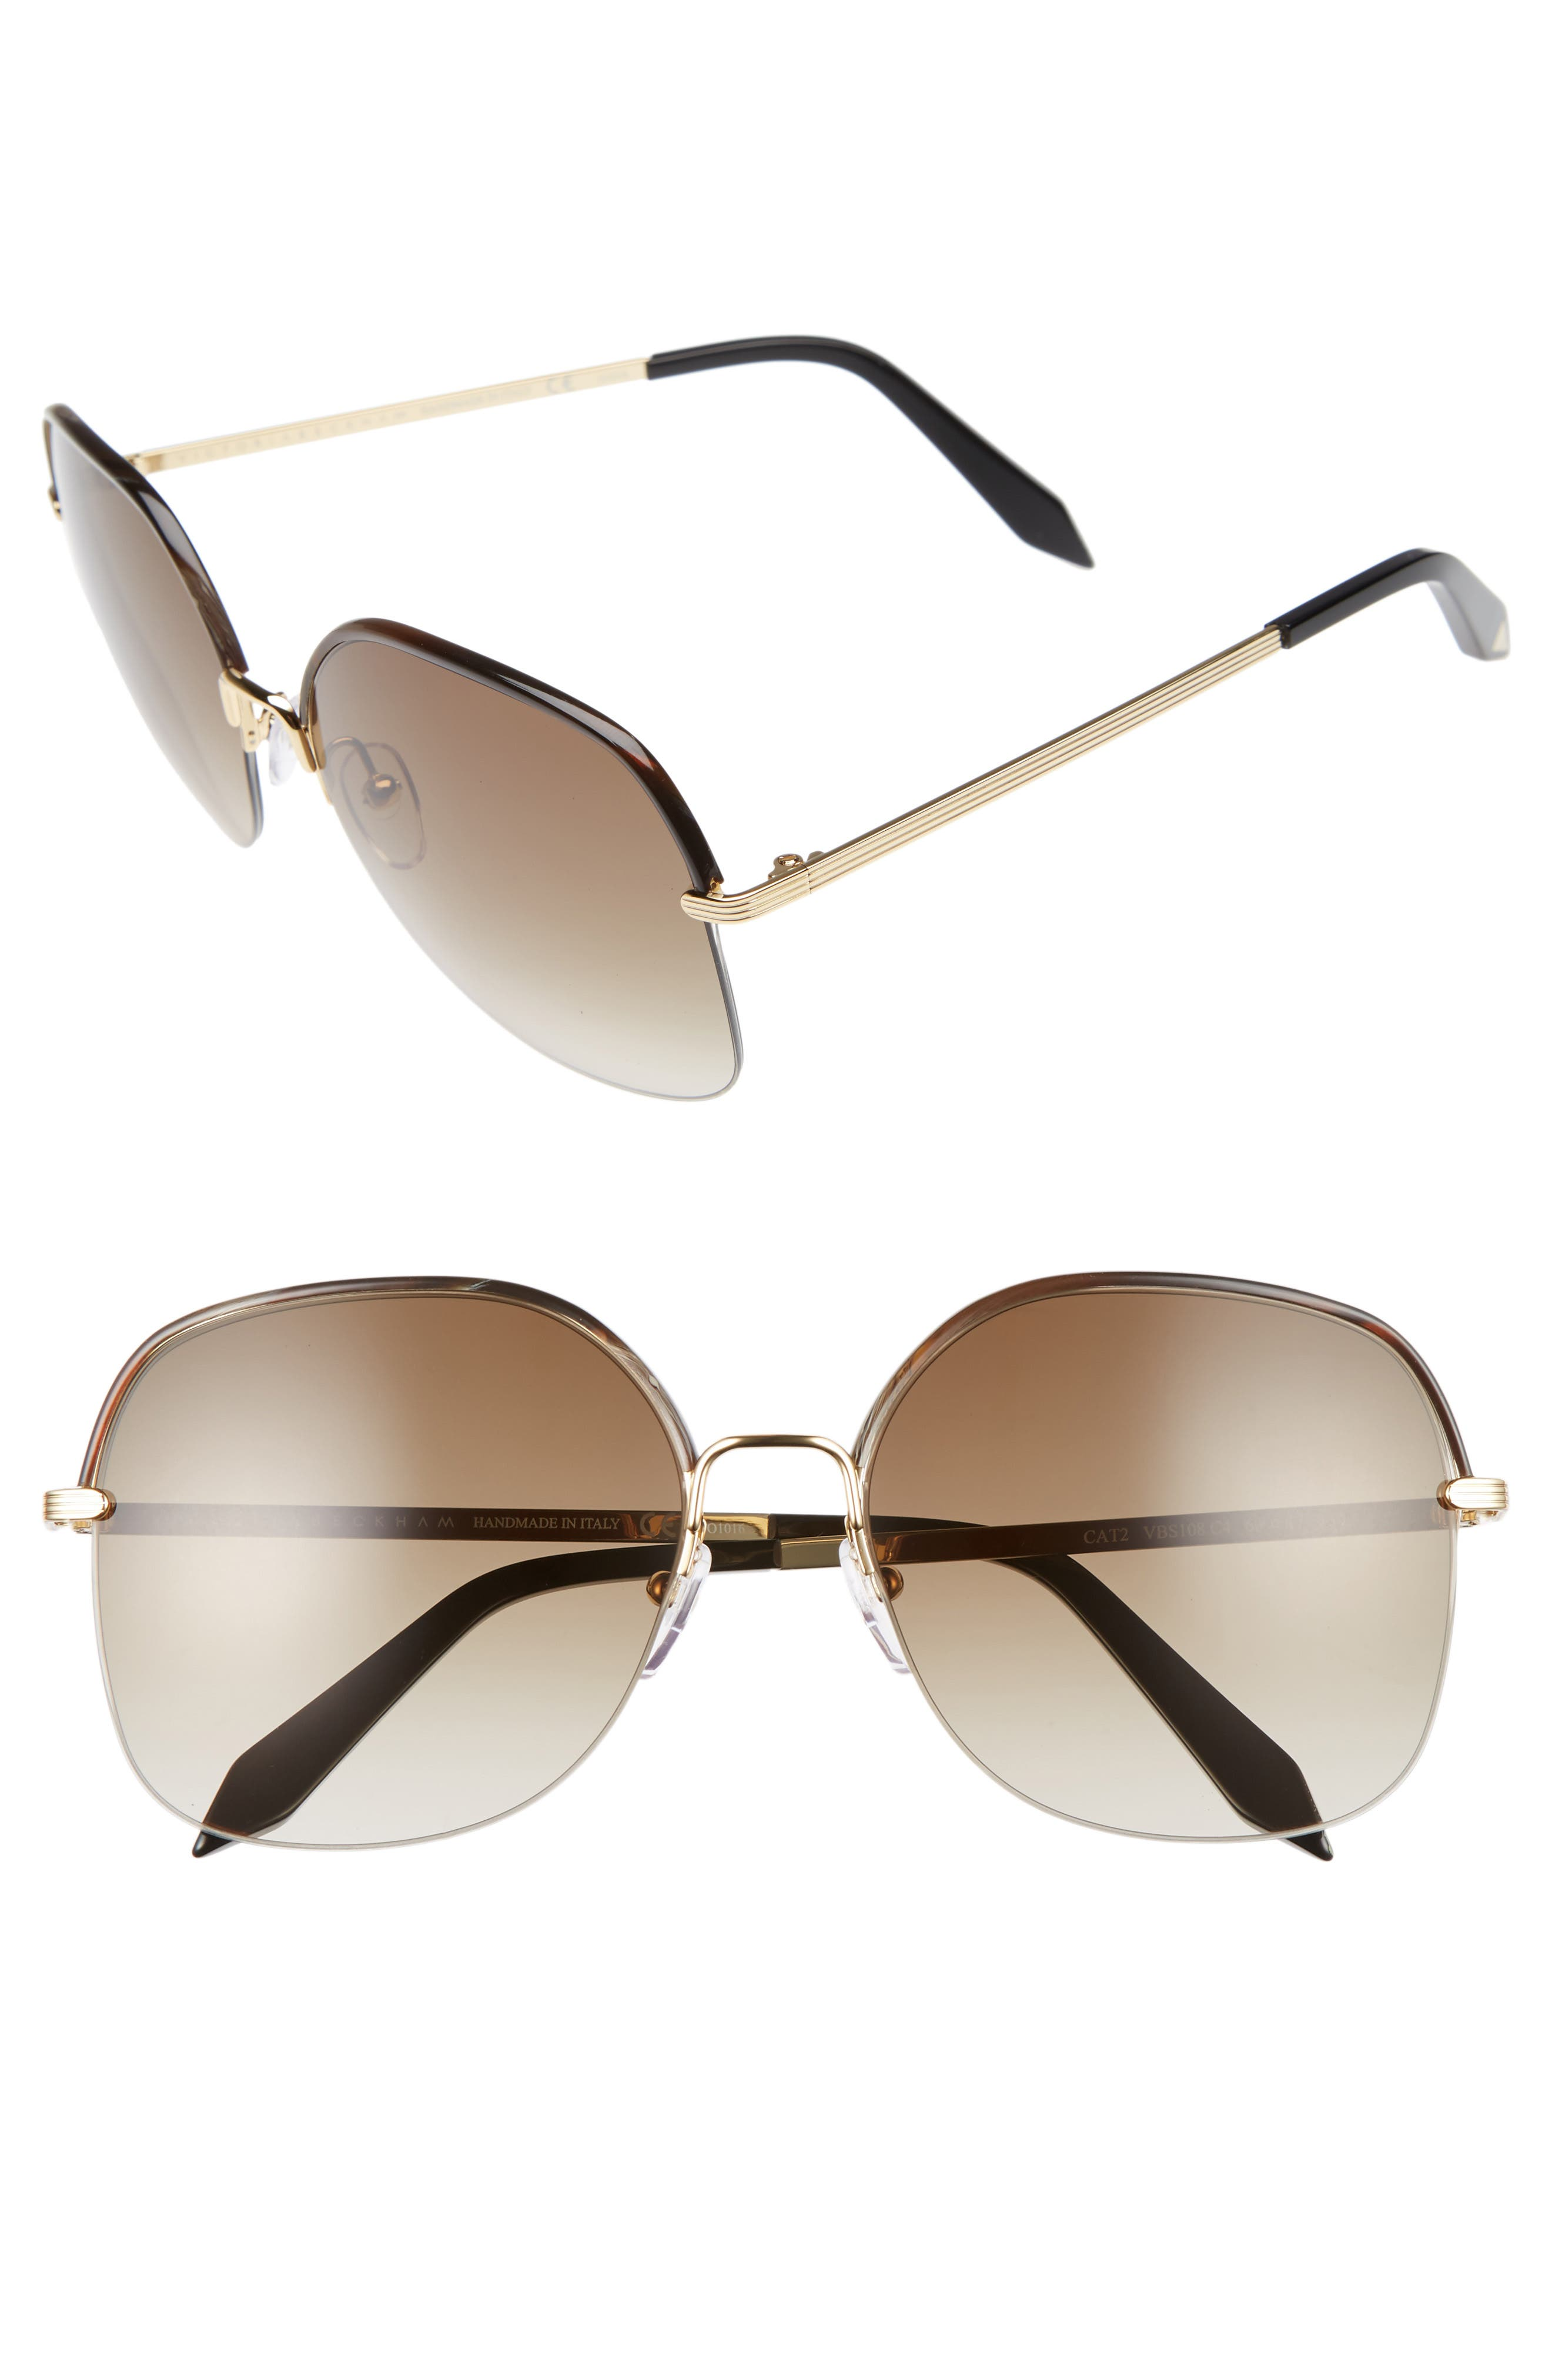 Victoria Beckham Windsor 60mm Gradient Lens Square Sunglasses